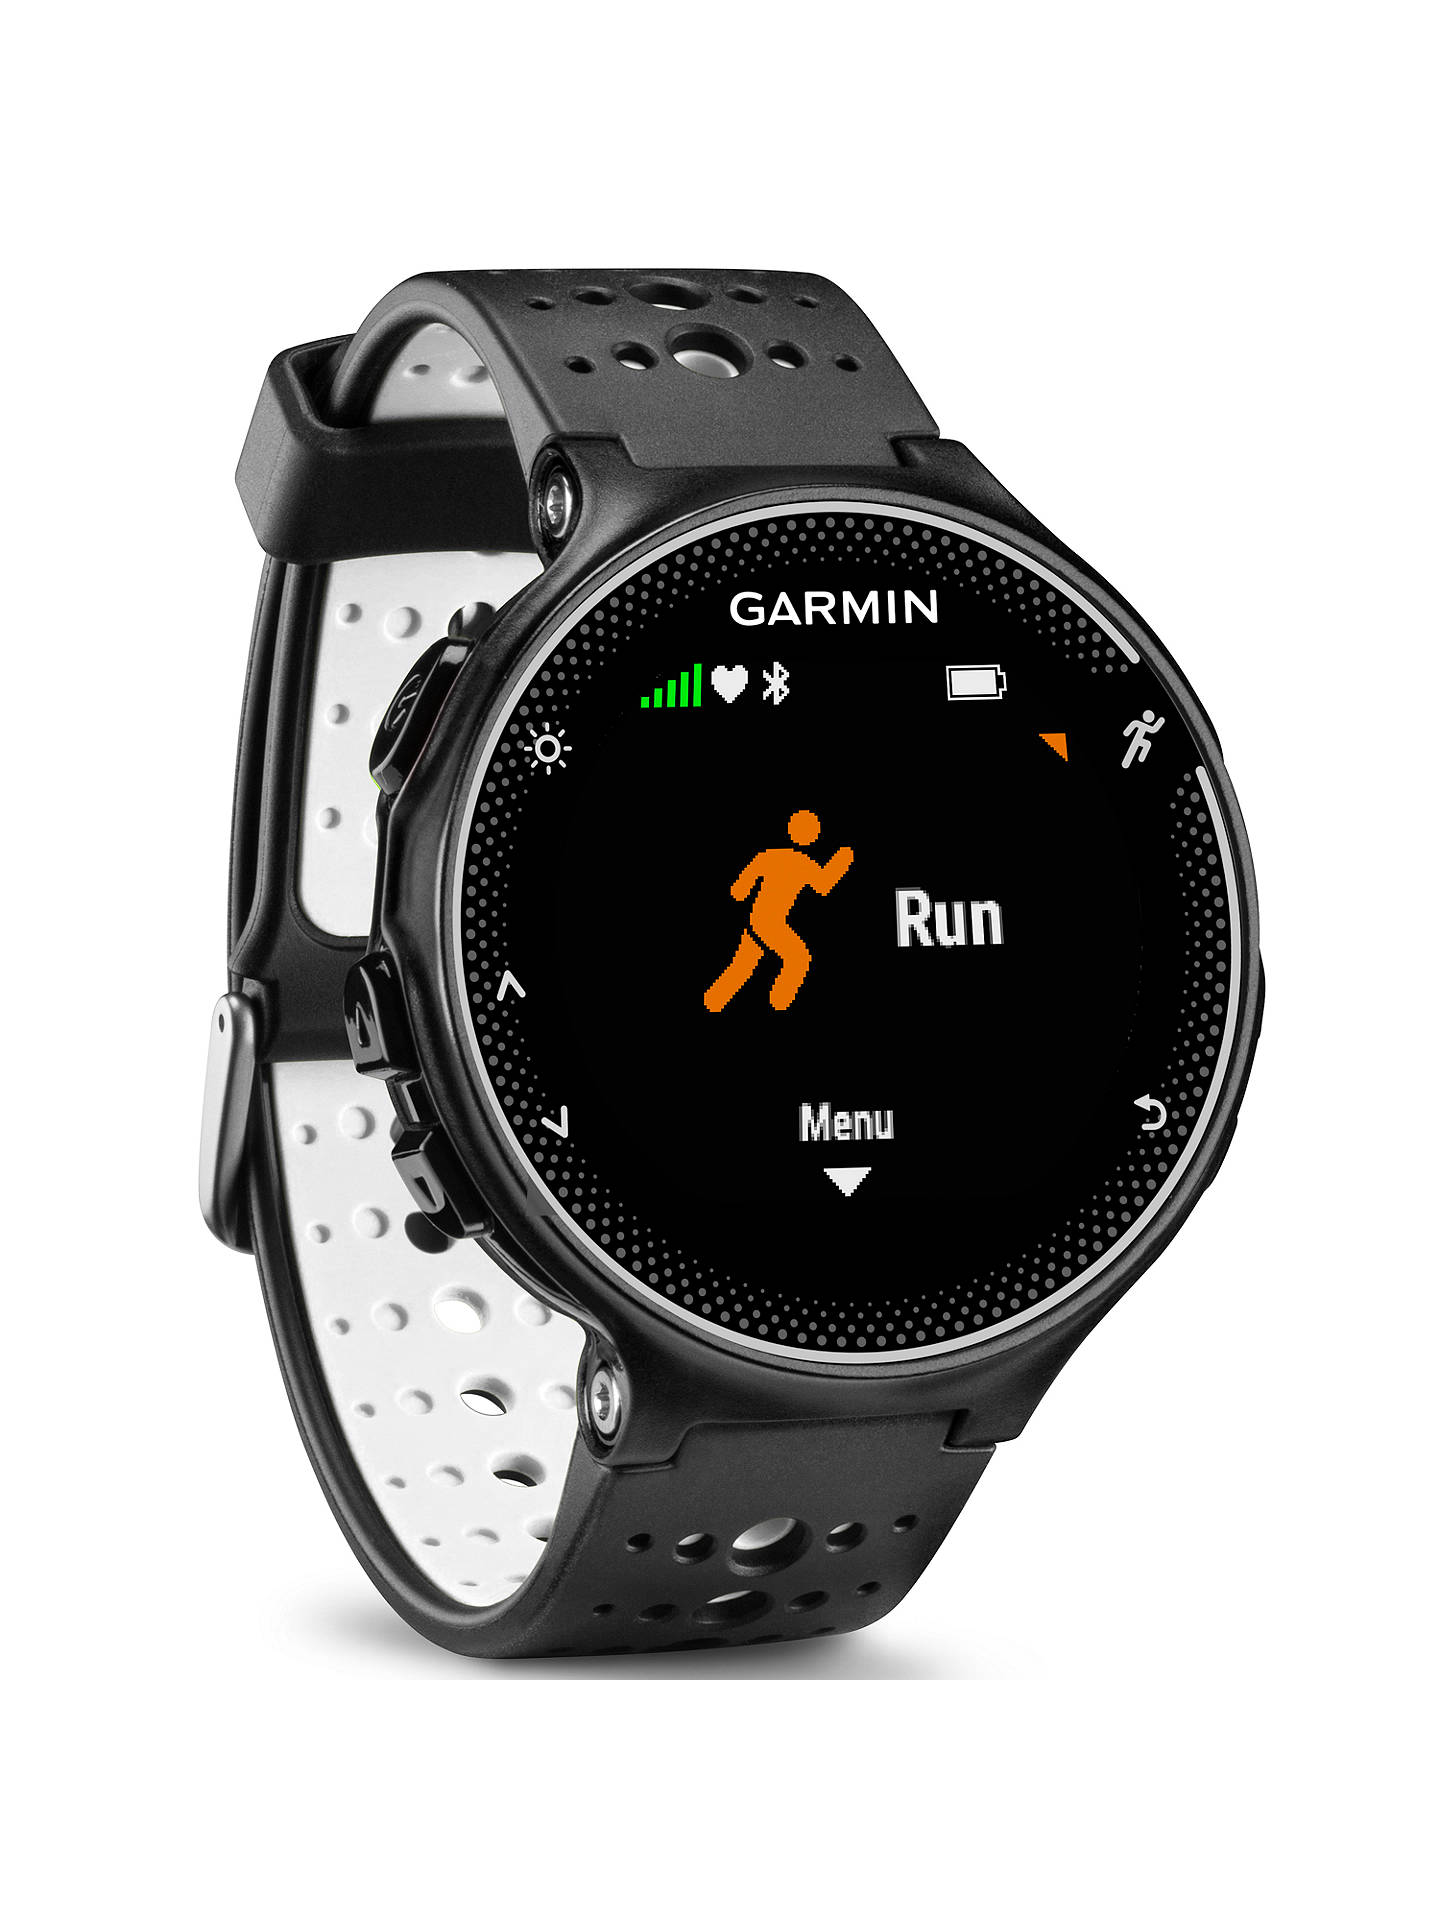 running watches with gps and heart rate monitor reviews